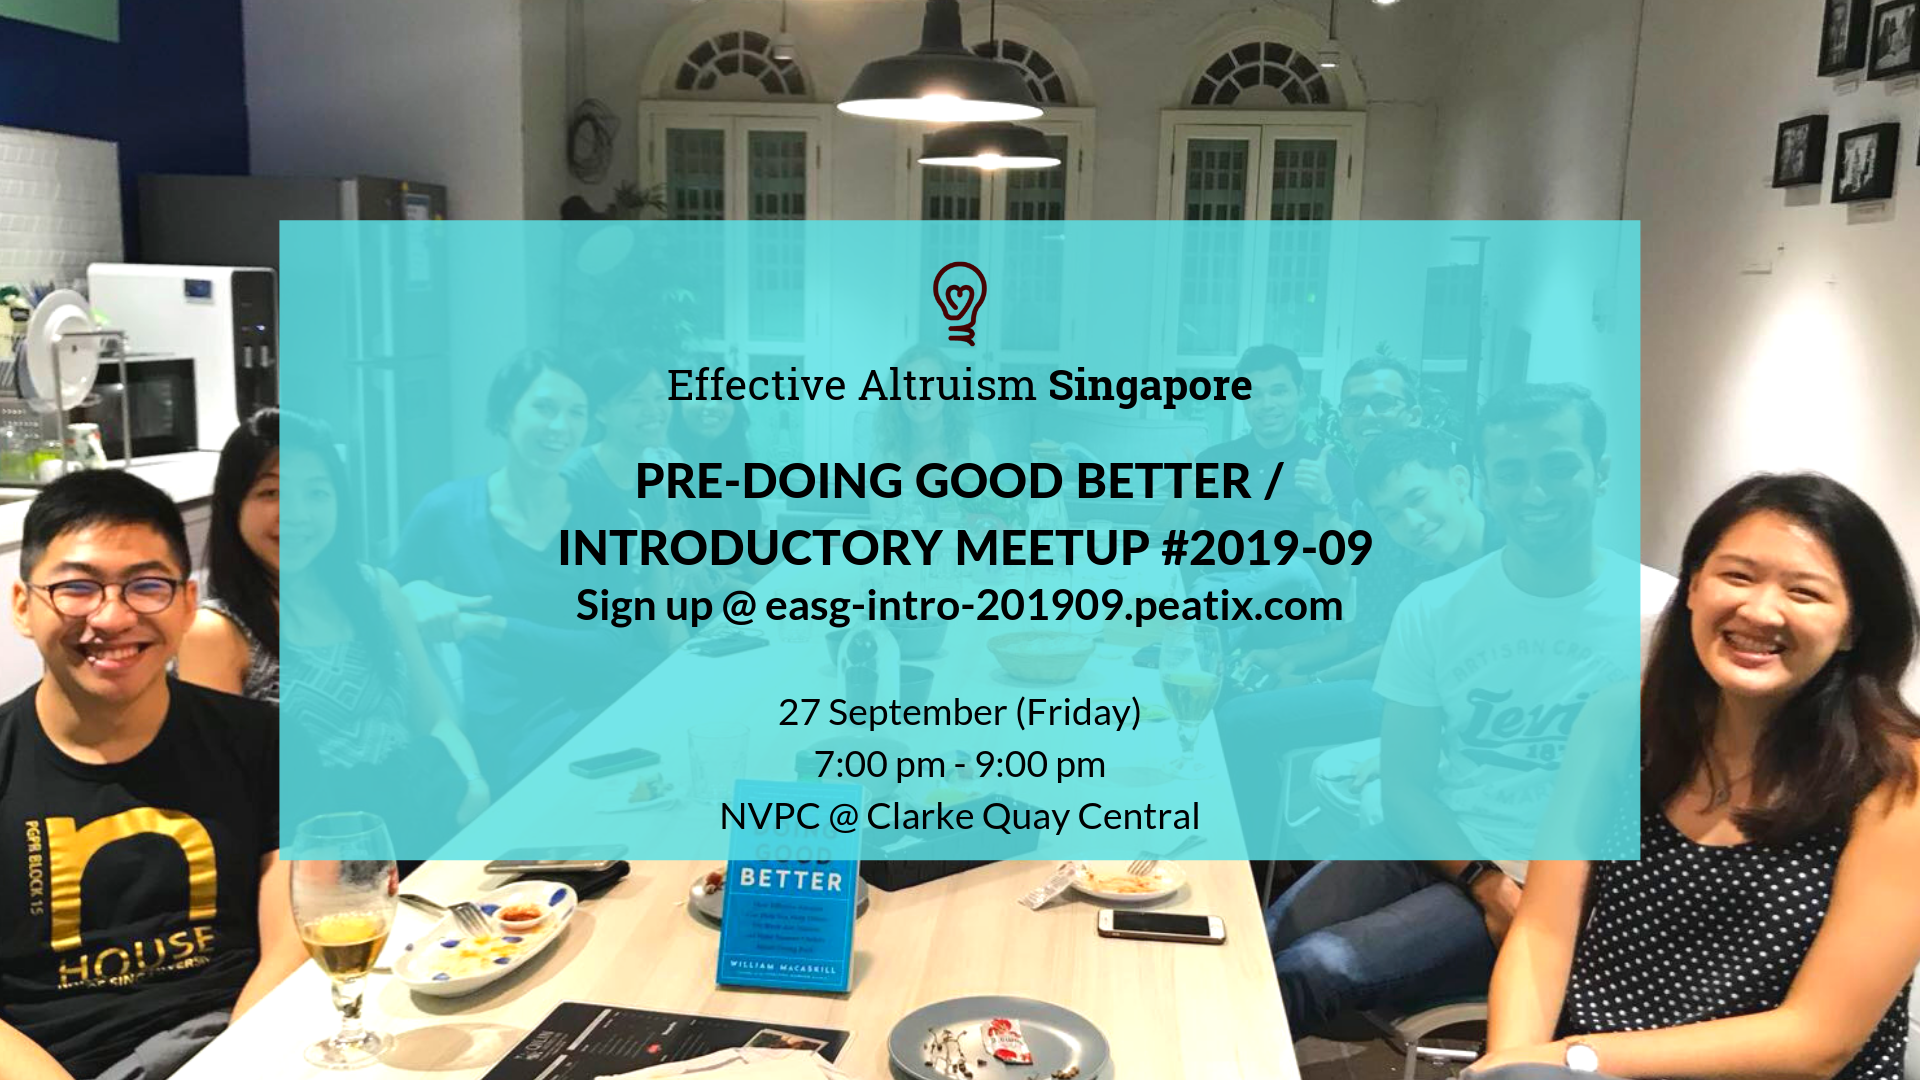 Introductory Meetup #2019-09 Facebook Poster.png